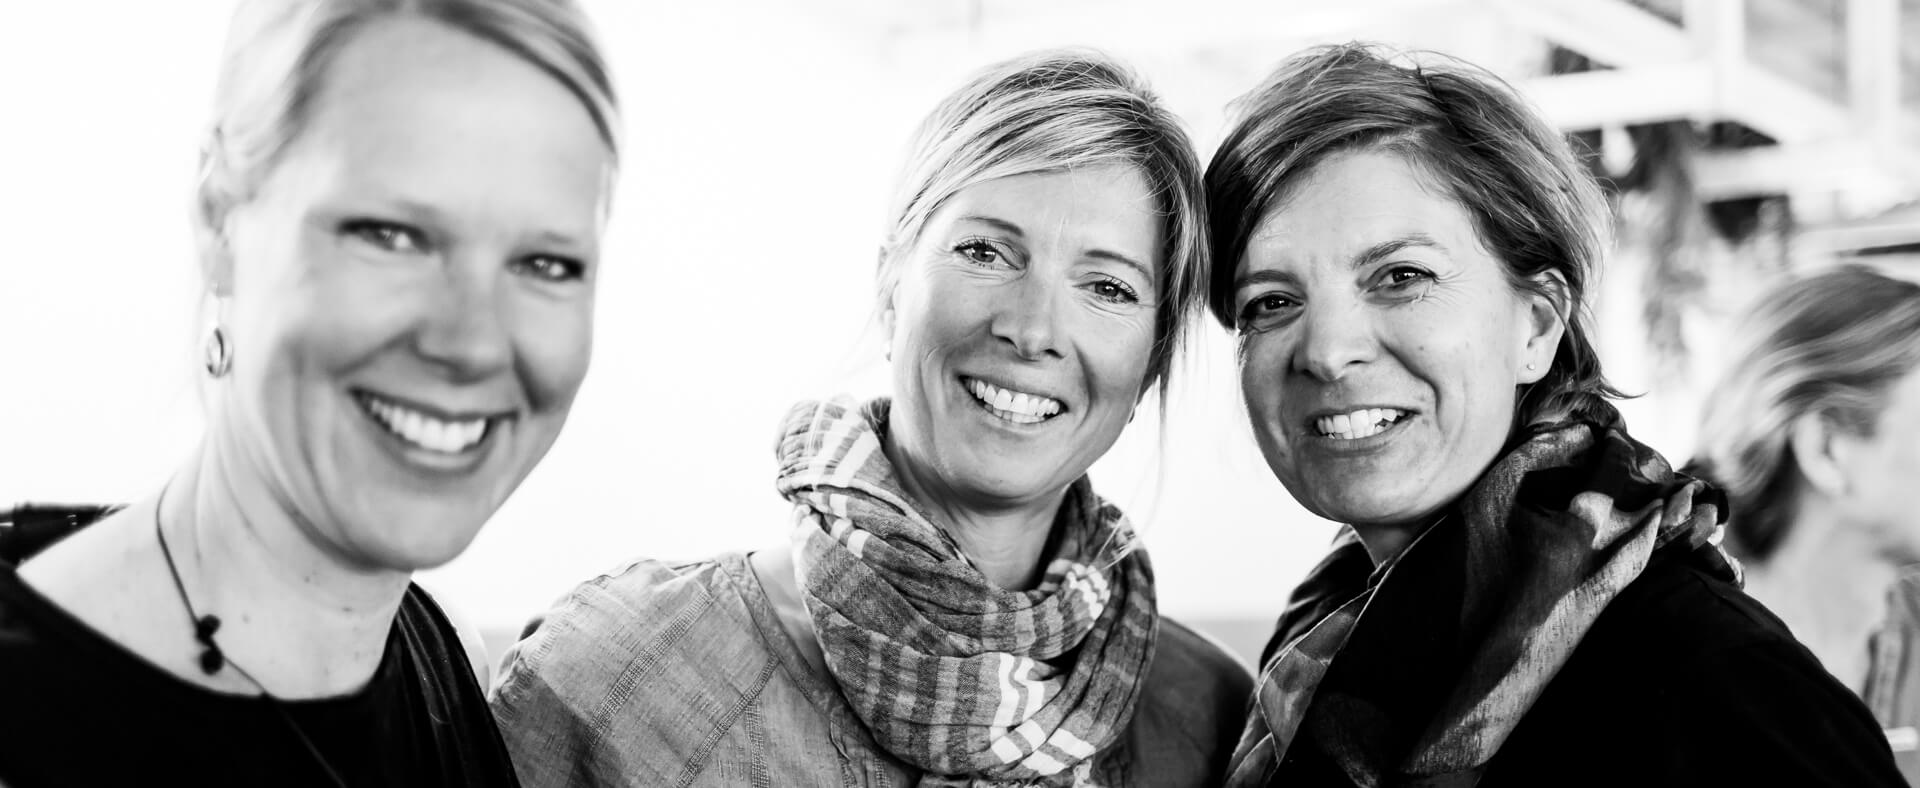 NEXT WOMEN'S HUB DAY <br>ROSENHEIM